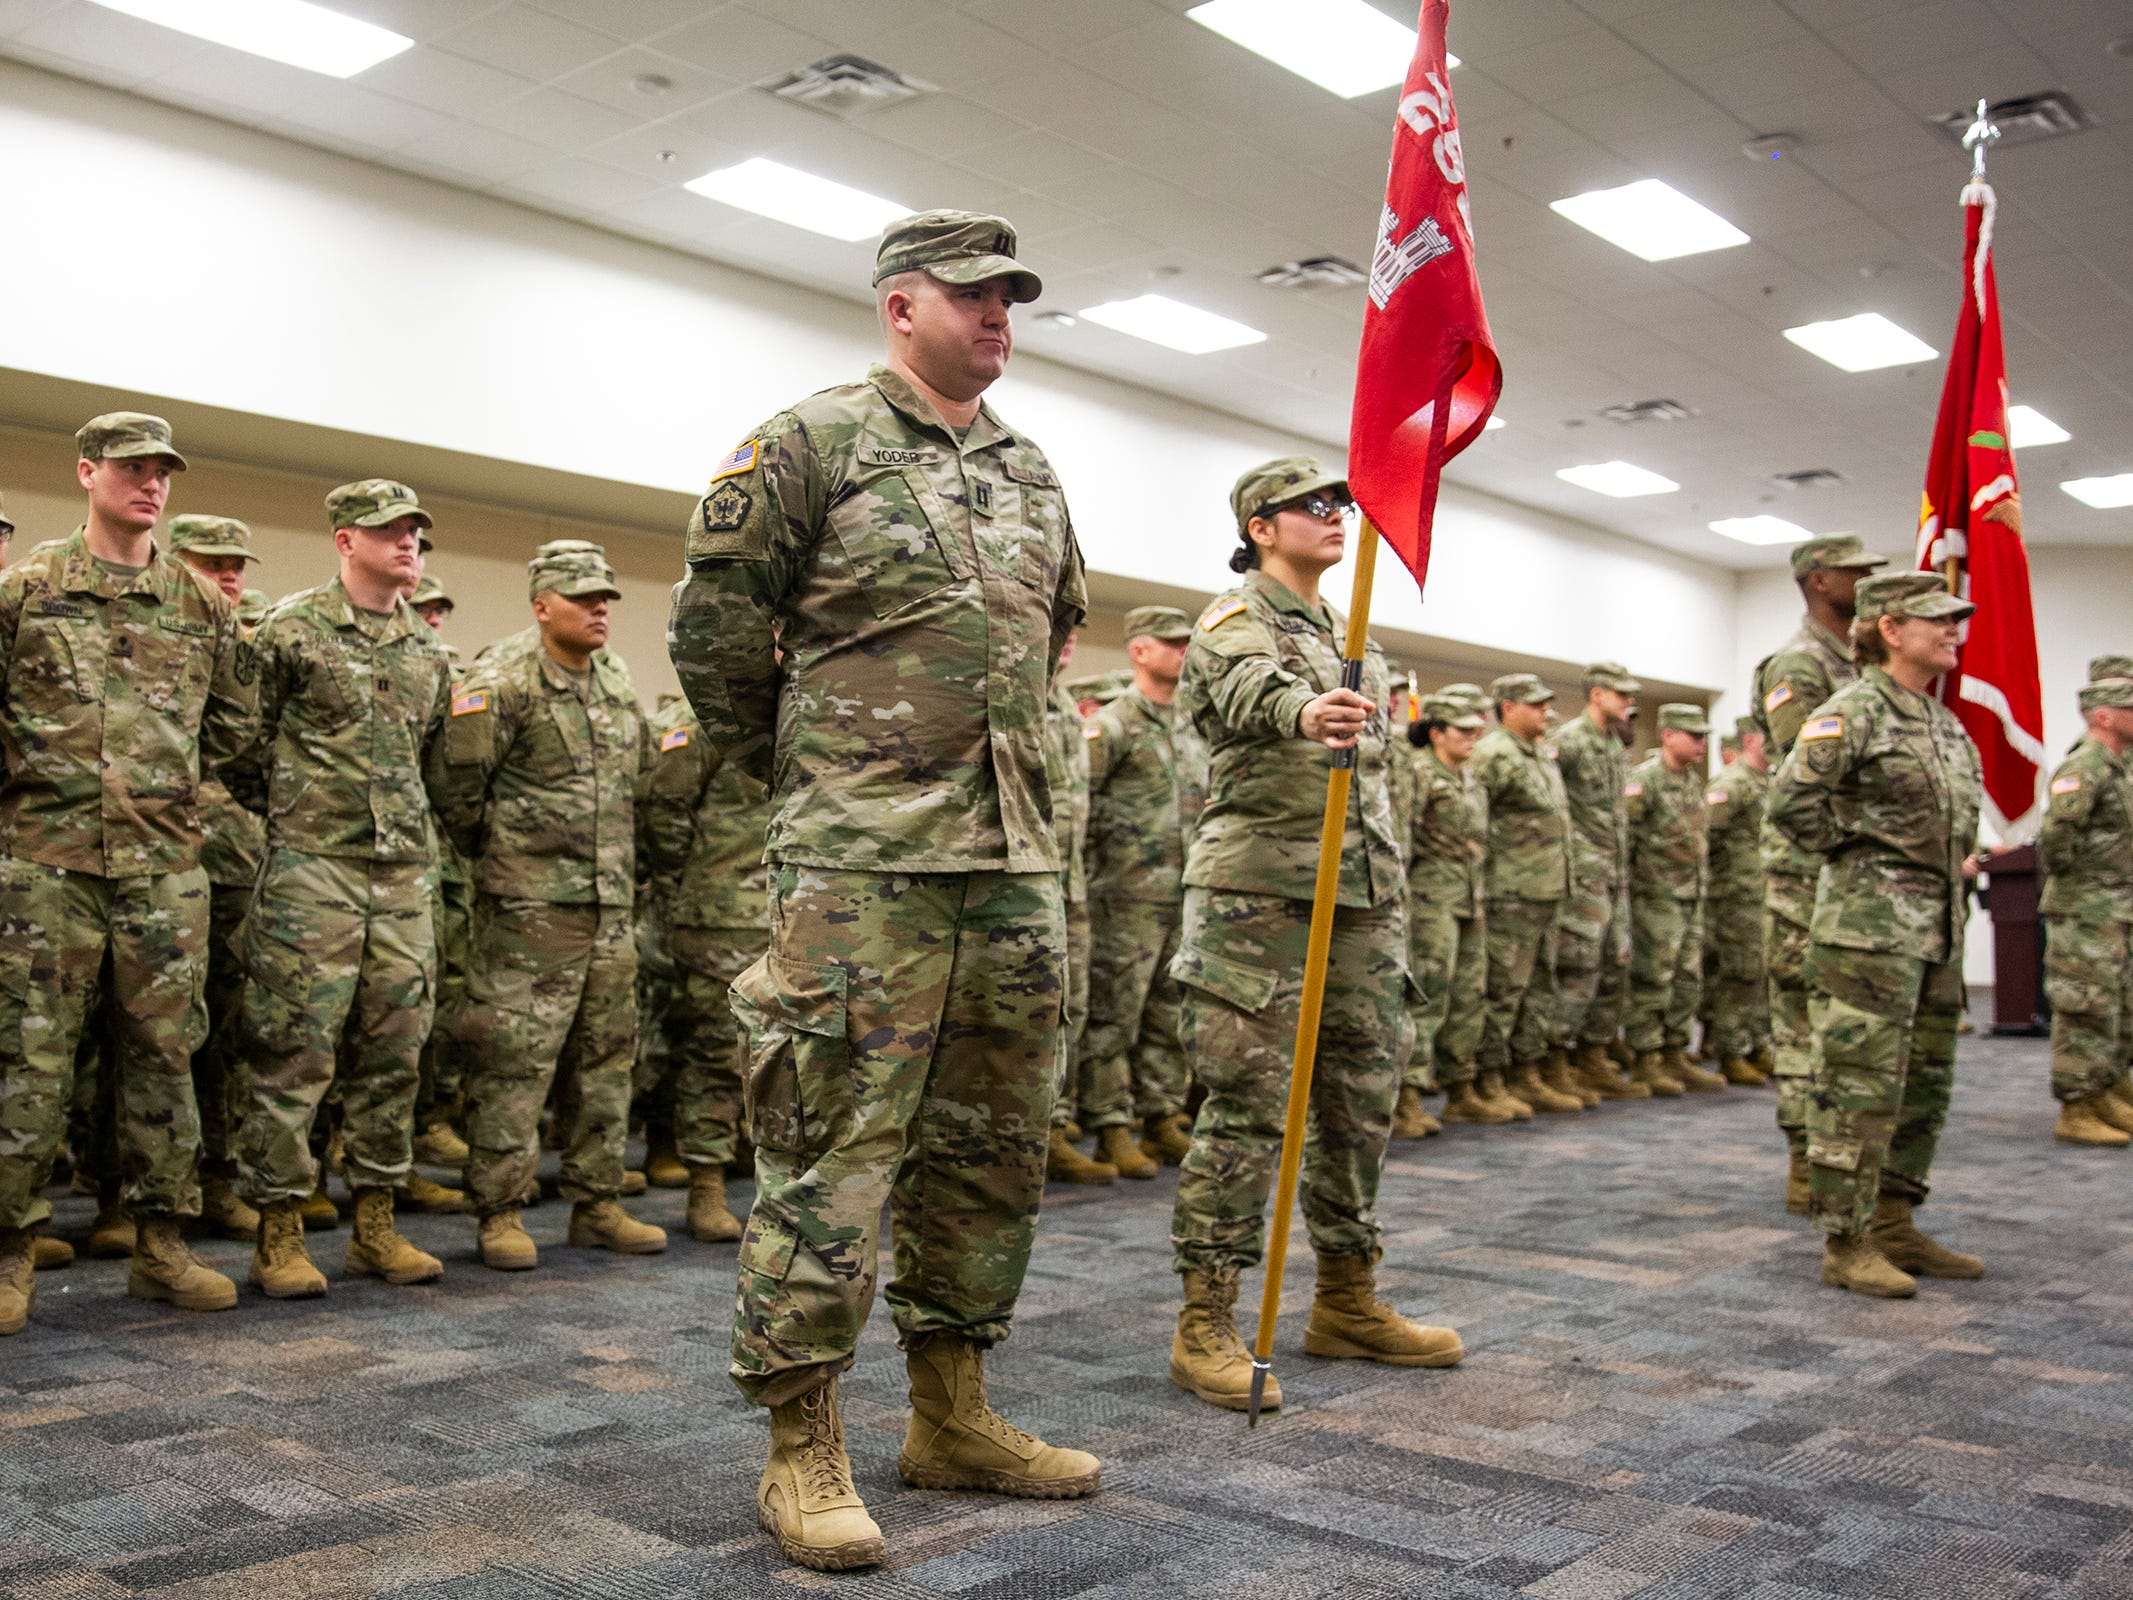 Soldiers of the 253rd Engineer Battalion stand in rows during their deployment ceremony at Papago Park Military Reservation on Sunday, Feb. 24, 2019. The soldiers boarded buses immediately after the ceremony.